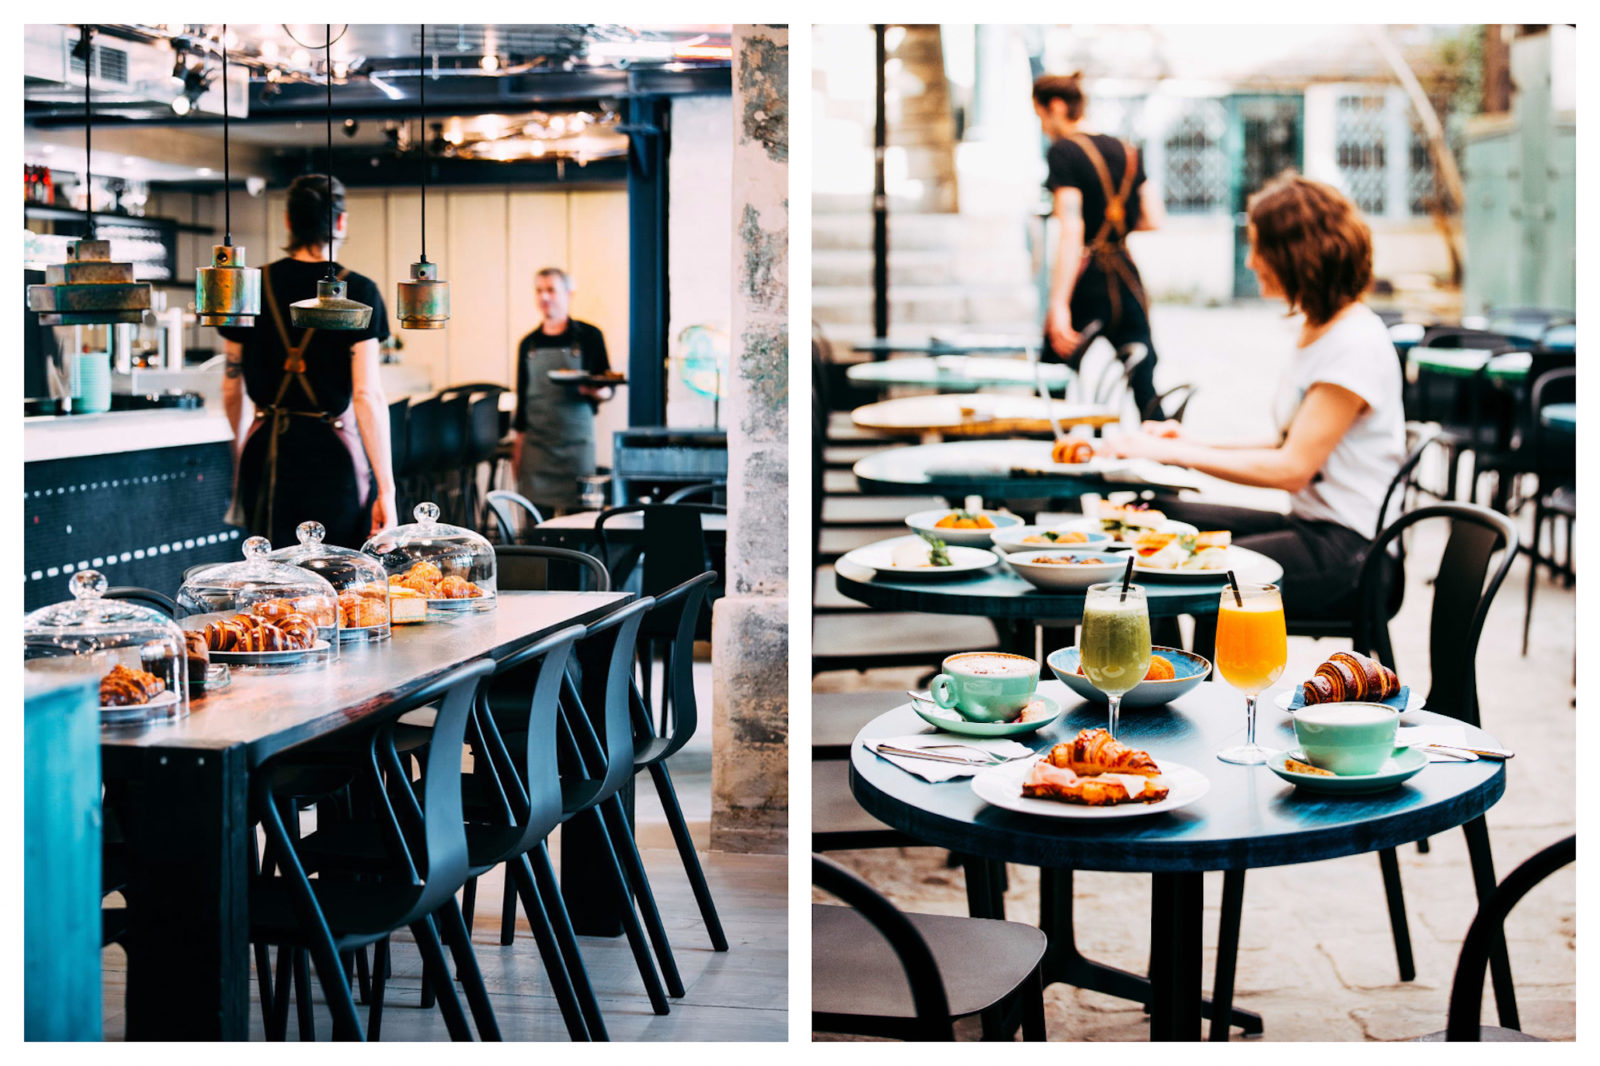 The industrial-style interiors of Marcello (left) and an outdoor table with brunch for two on a terrace in Paris' Saint Germain neighborhood (right).